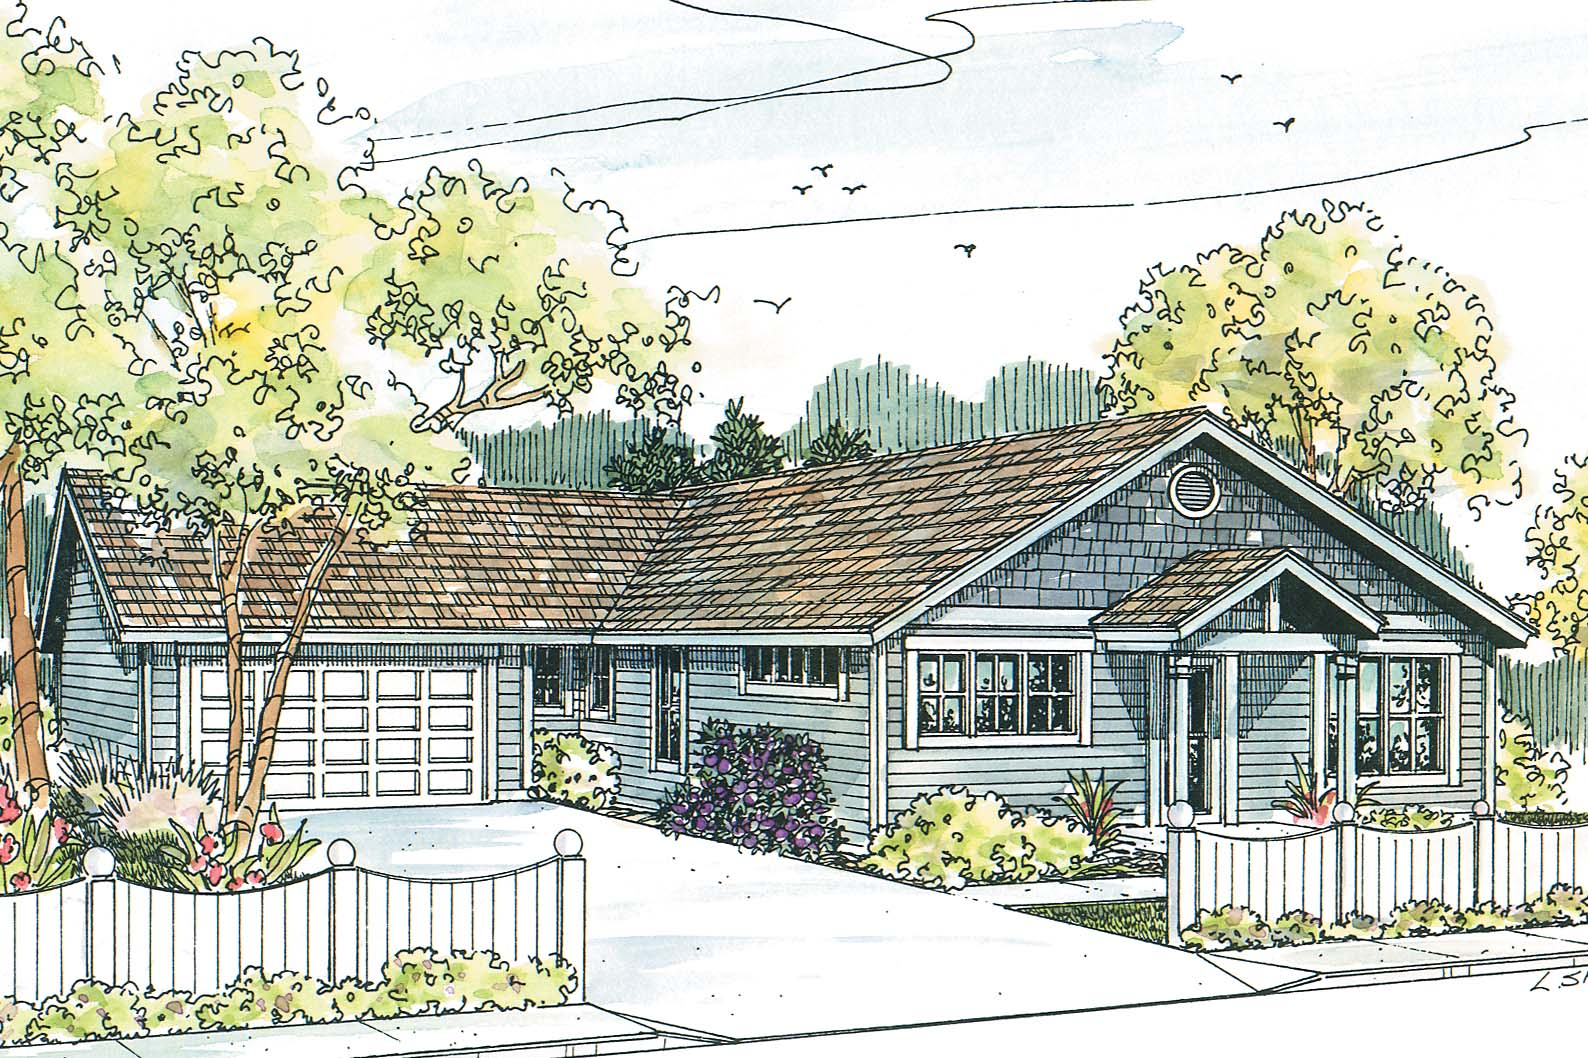 Craftsman House Plan, Featured House Plan of the Week, Evelyn 30-480